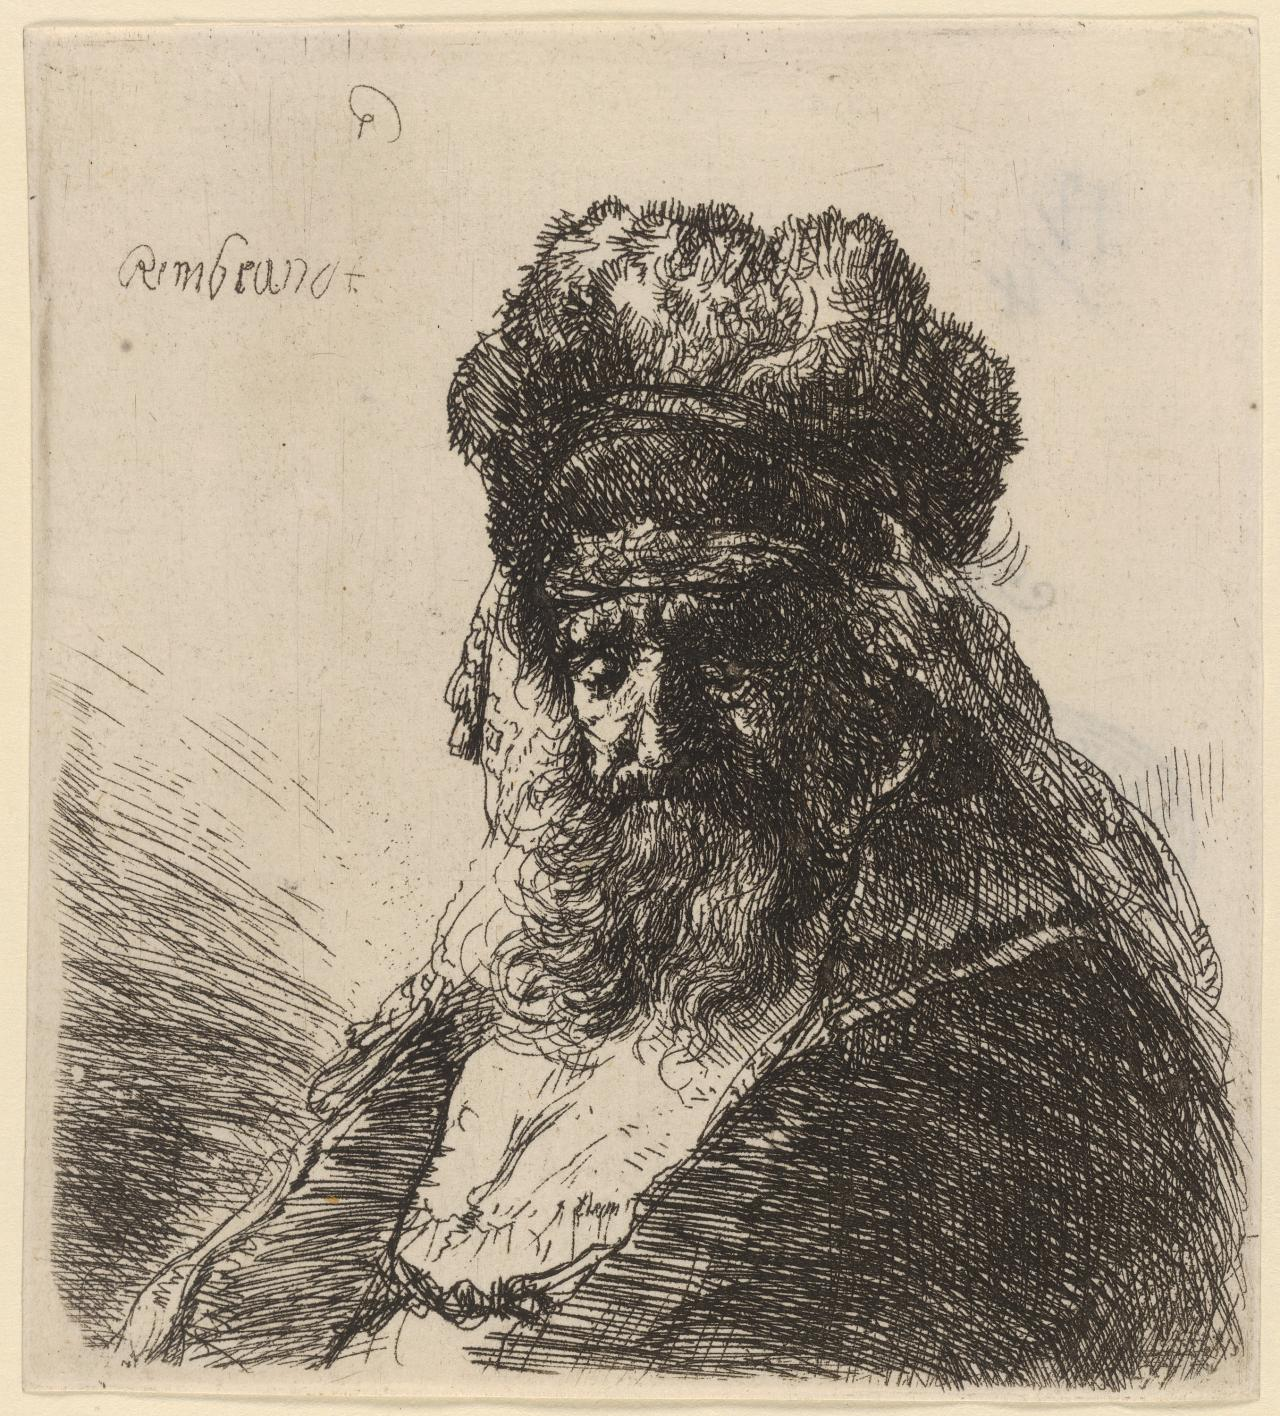 Old Bearded Man in a High Fur Cap, with Closed Eyes